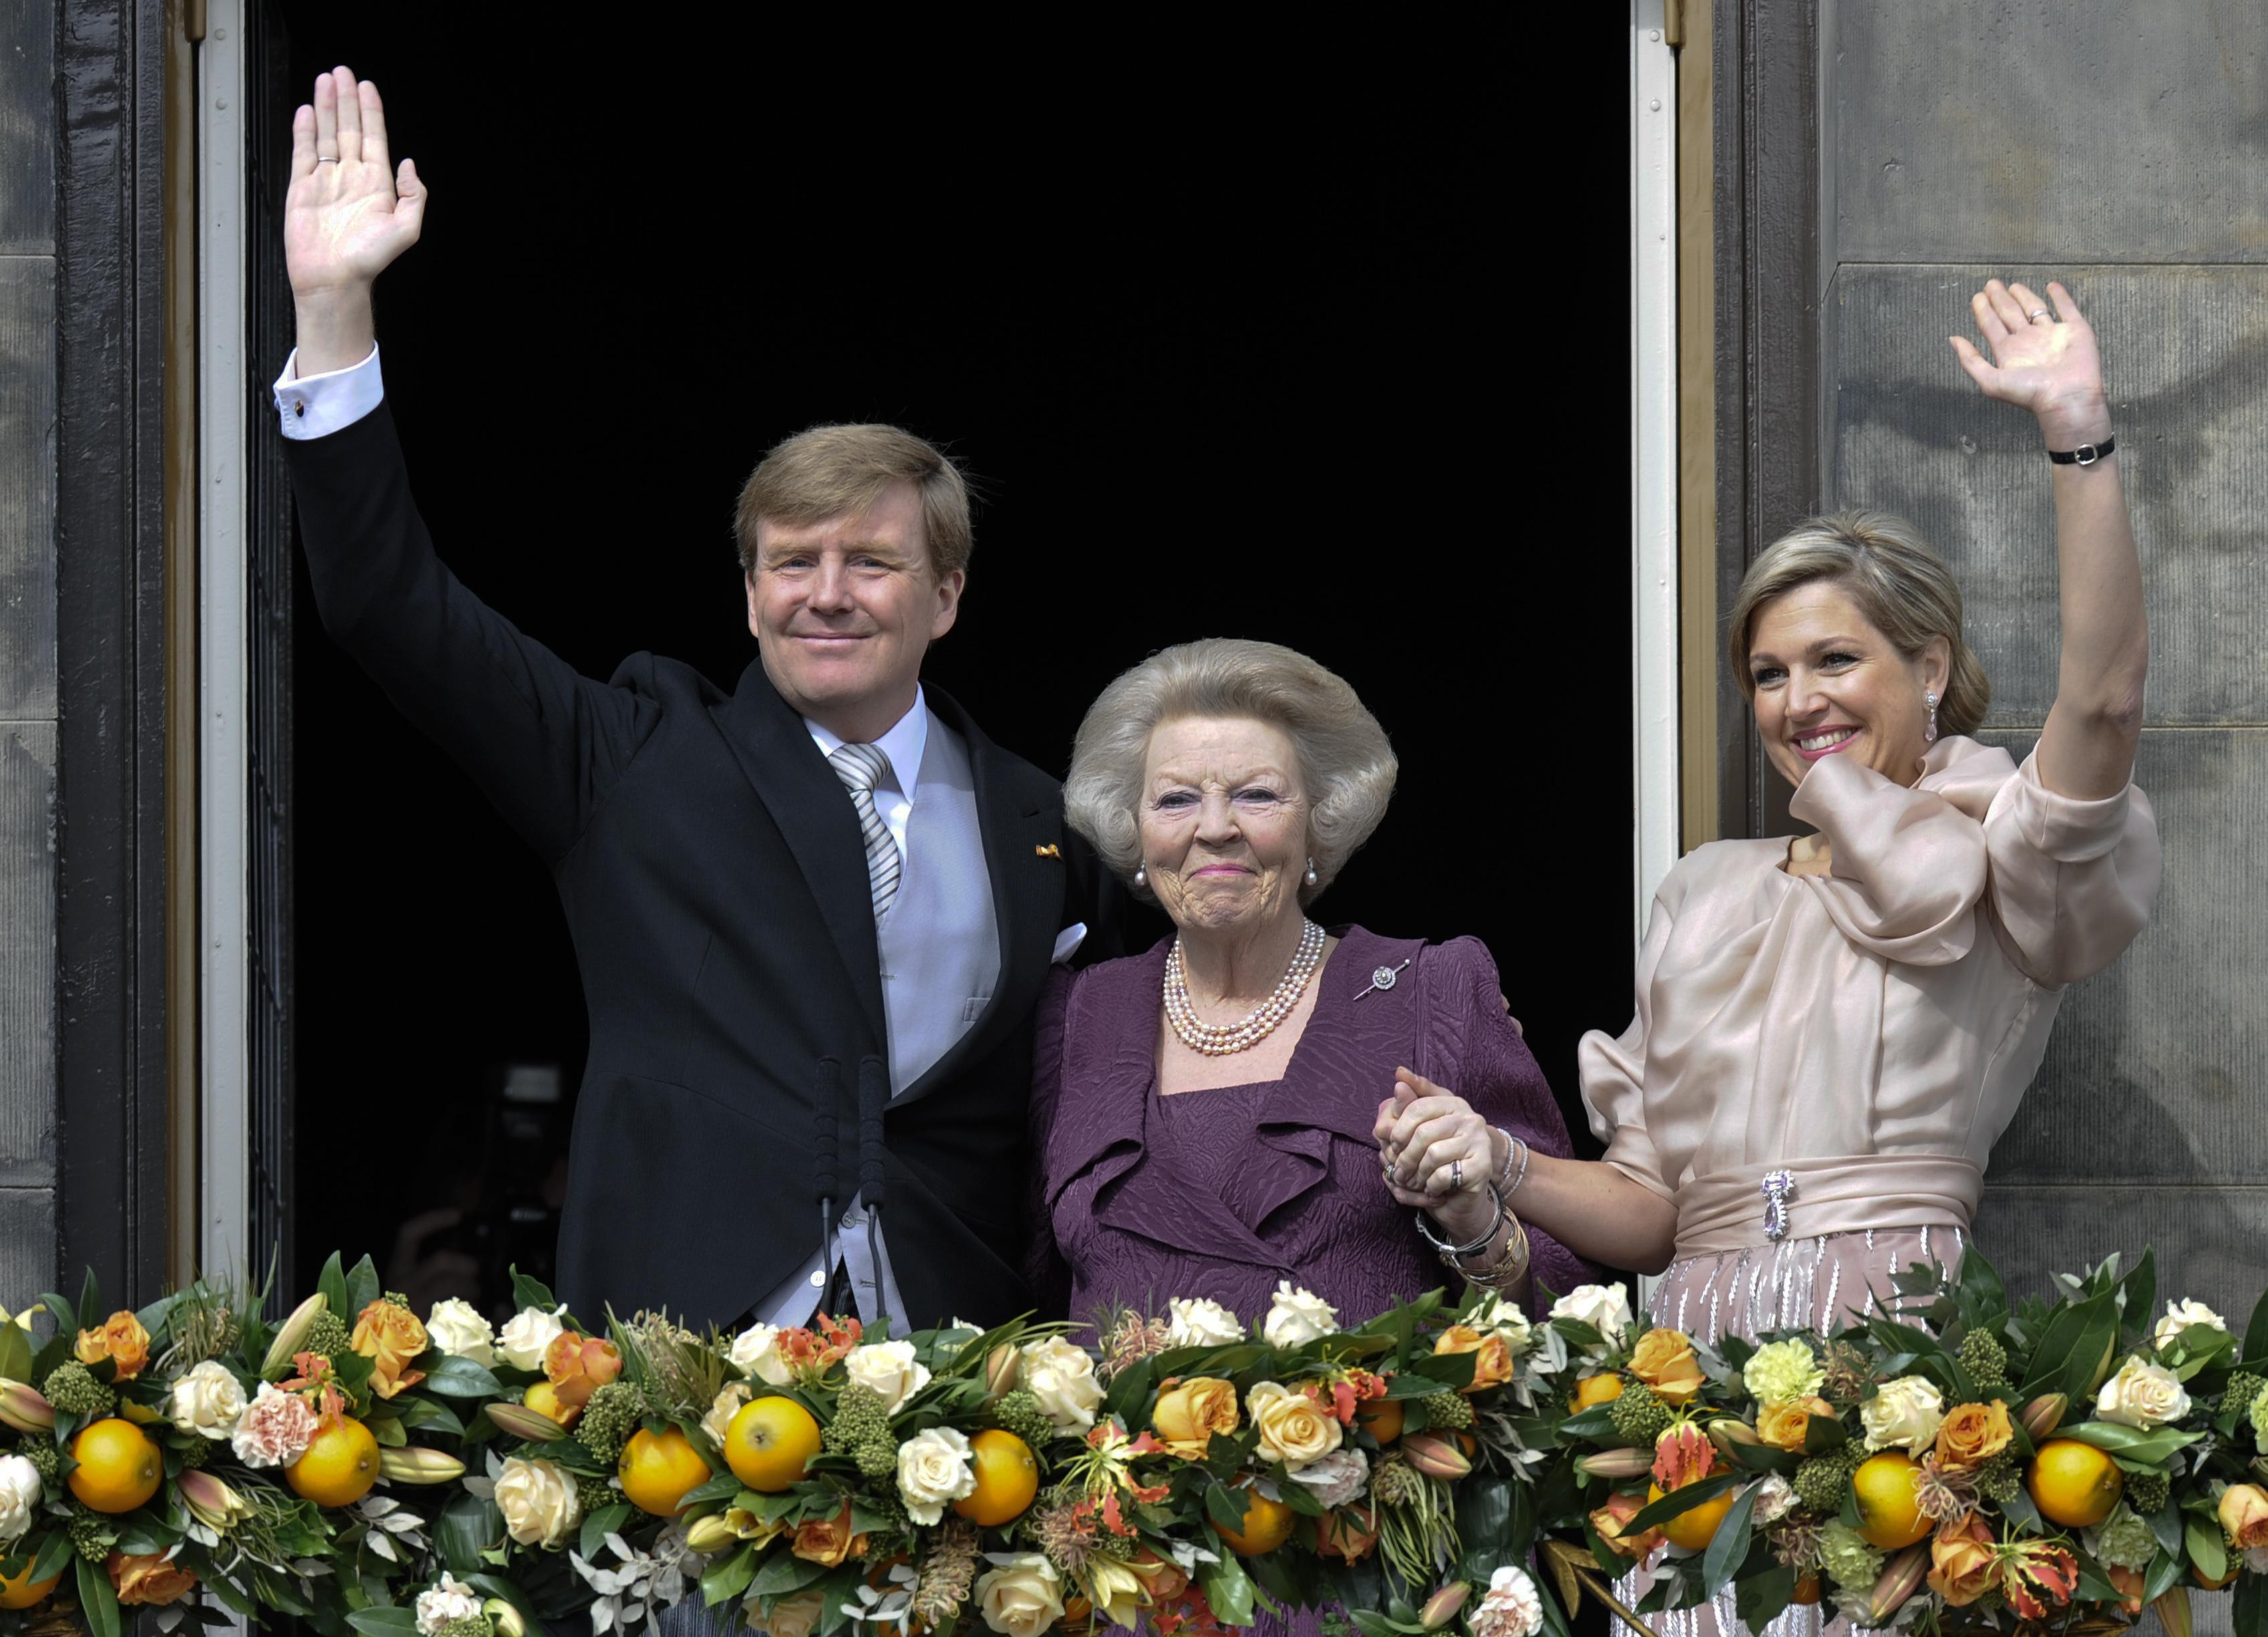 Prince Willem, Queen Beatrix, Princess Maxima of the Netherlands